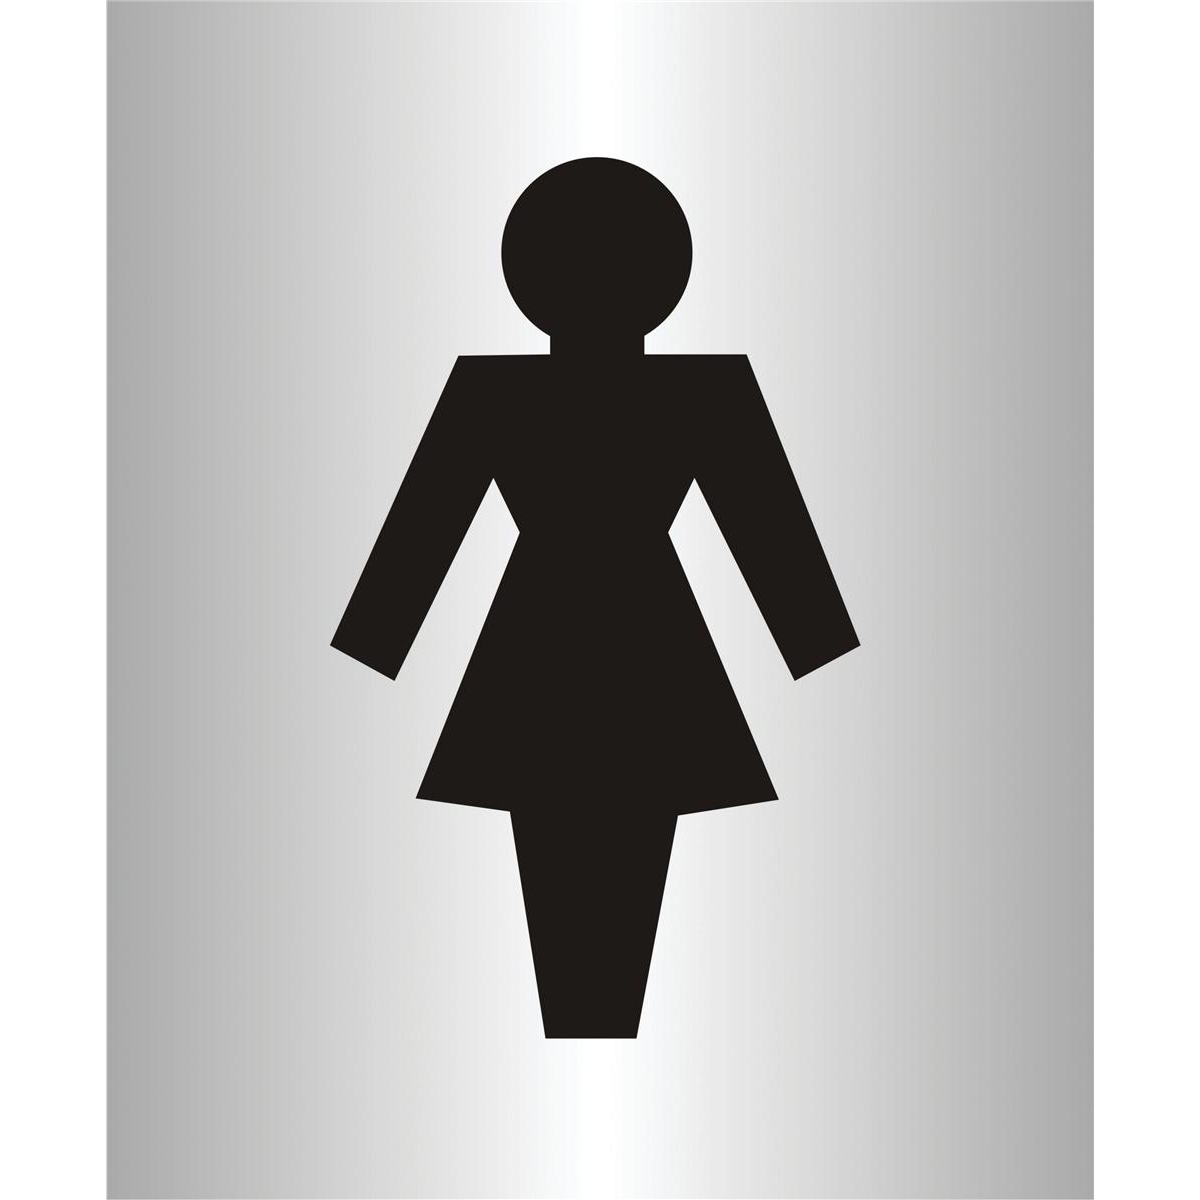 Stewart Superior Ladies Logo Sign Brushed Aluminium Acrylic W115xH150mm Self-adhesive Ref bac105